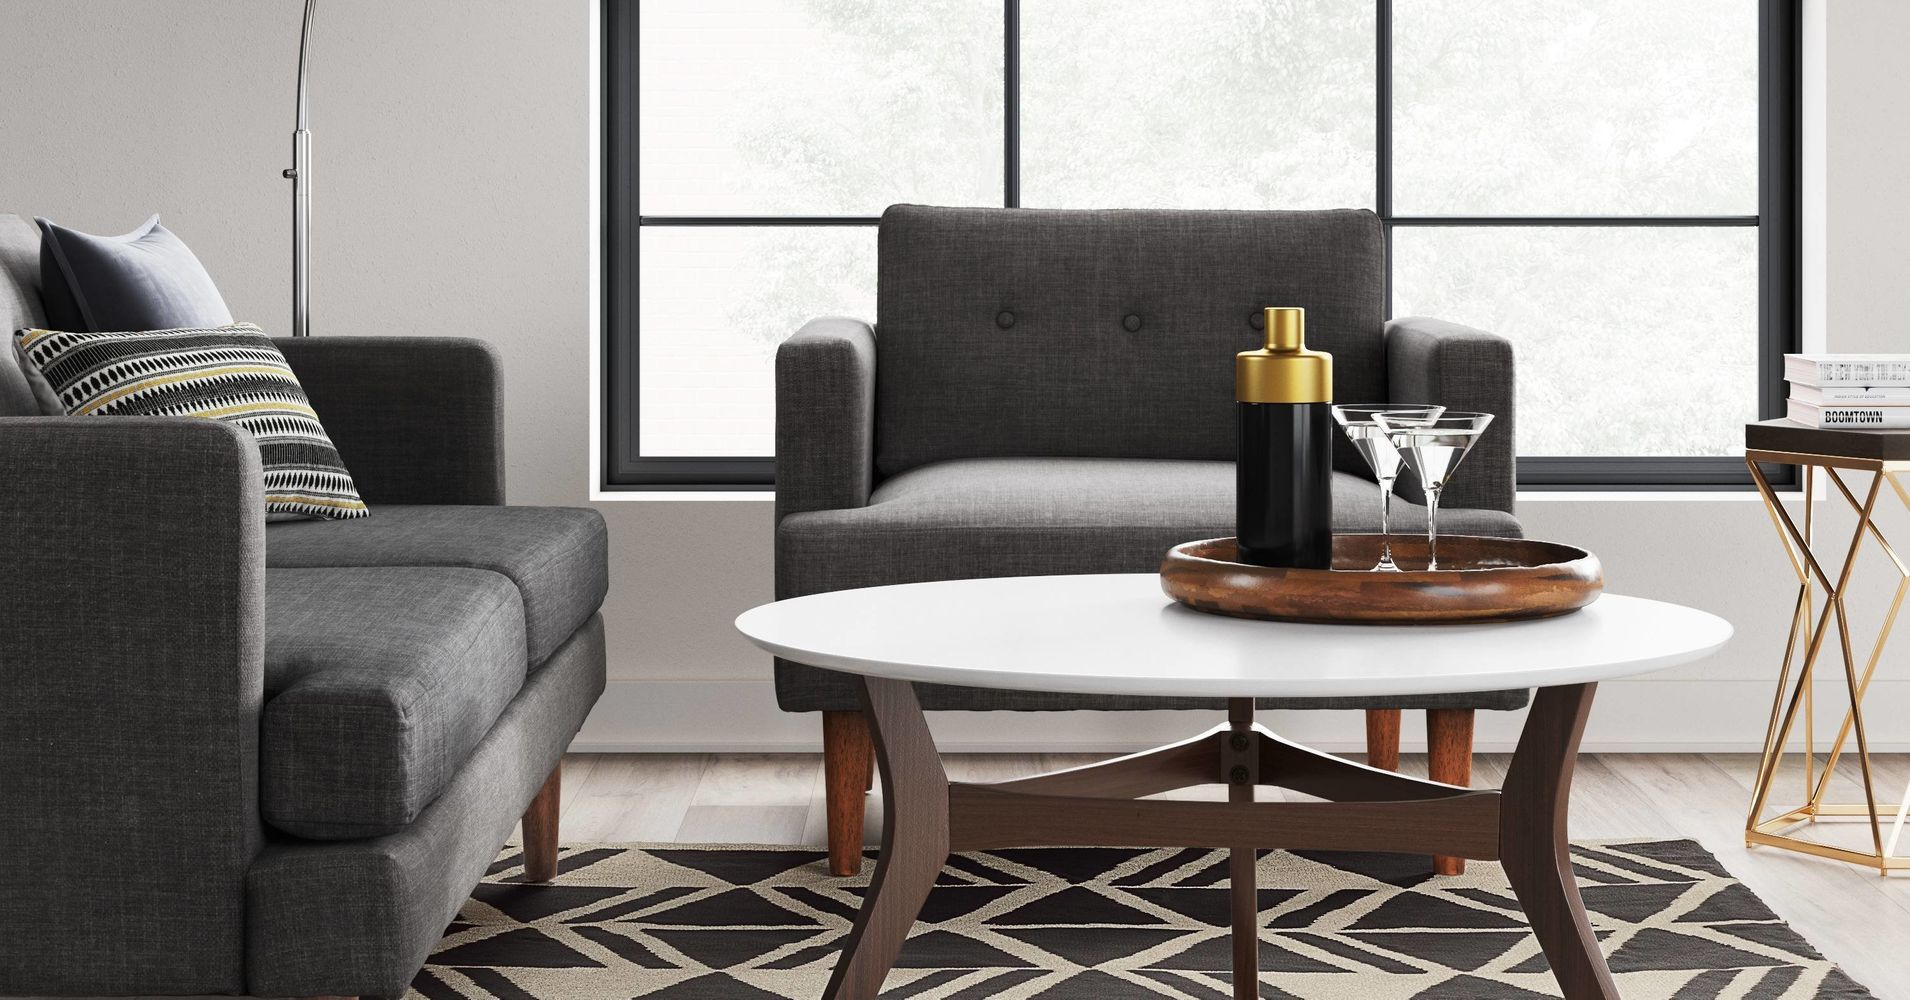 The 24 best websites for discount furniture and decor for Cheap furniture sites